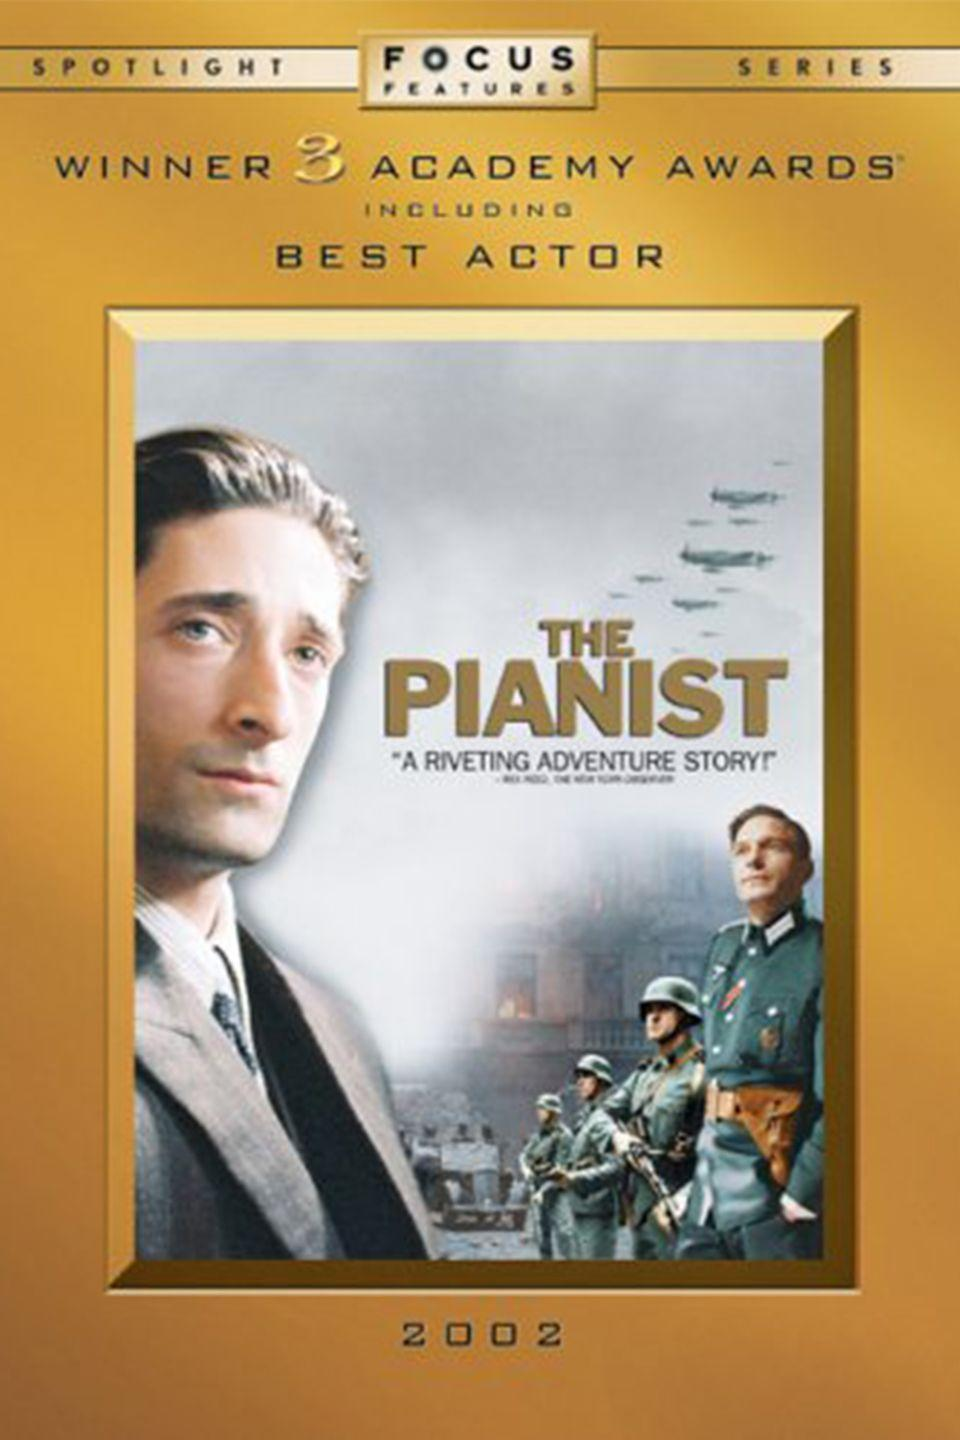 """<p><a class=""""link rapid-noclick-resp"""" href=""""https://www.amazon.com/Pianist-Adrien-Brody/dp/B000FVQLRA/?tag=syn-yahoo-20&ascsubtag=%5Bartid%7C10067.g.15907978%5Bsrc%7Cyahoo-us"""" rel=""""nofollow noopener"""" target=""""_blank"""" data-ylk=""""slk:Watch Now"""">Watch Now</a> </p><p>An adaptation of Wladyslaw Szpilman's autobiography, <em>The Pianist</em> follows a glamorous Jewish musician who is forced into the Warsaw Ghetto, separated from his family, and made to hide in various locations in the city's ruins during the German occupation of Poland during World War II.</p>"""